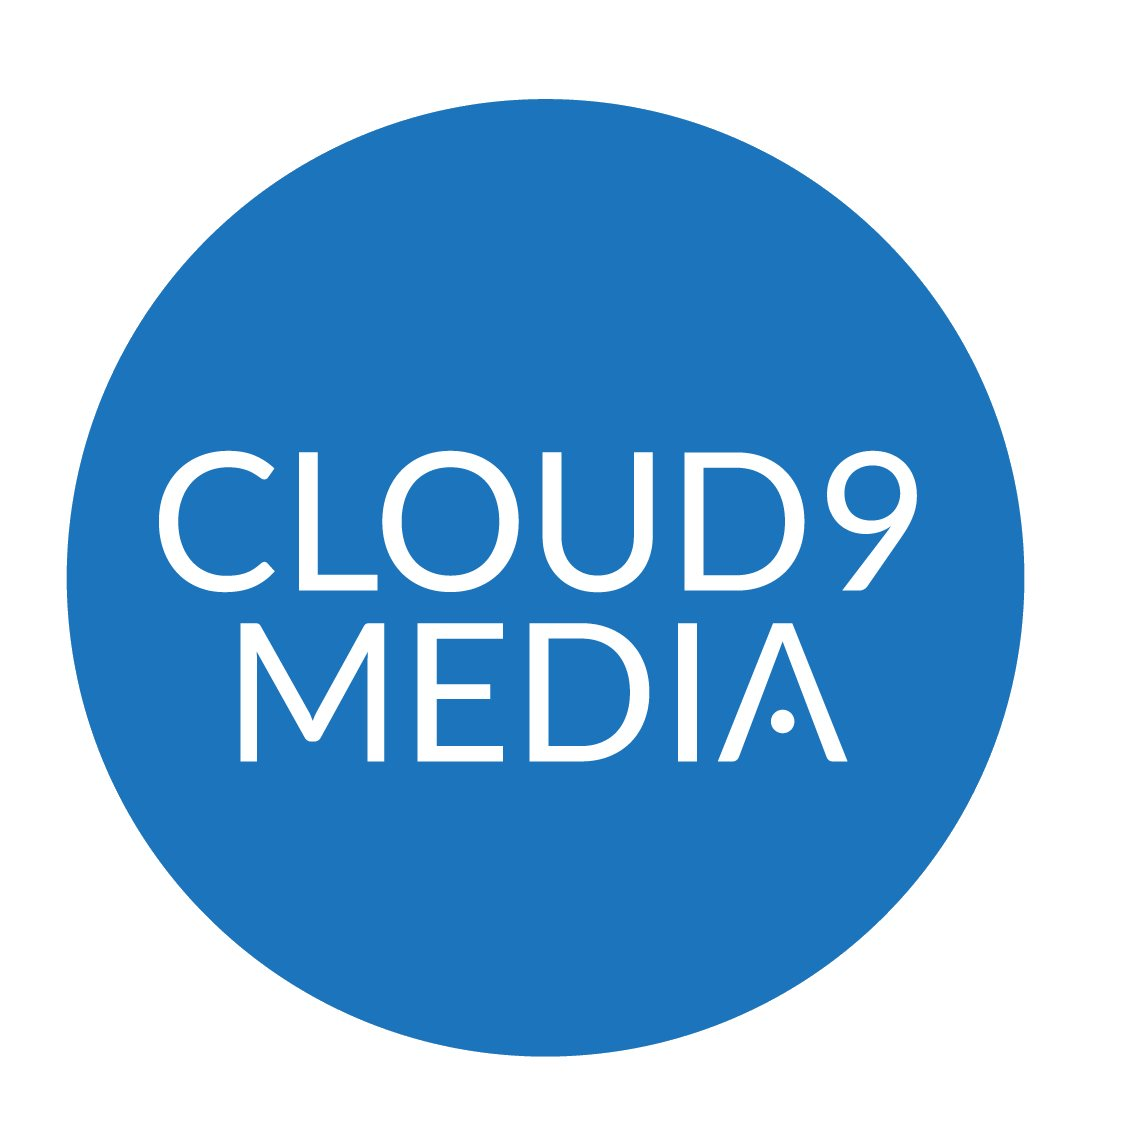 CLOUD 9 DIGITAL MEDIA